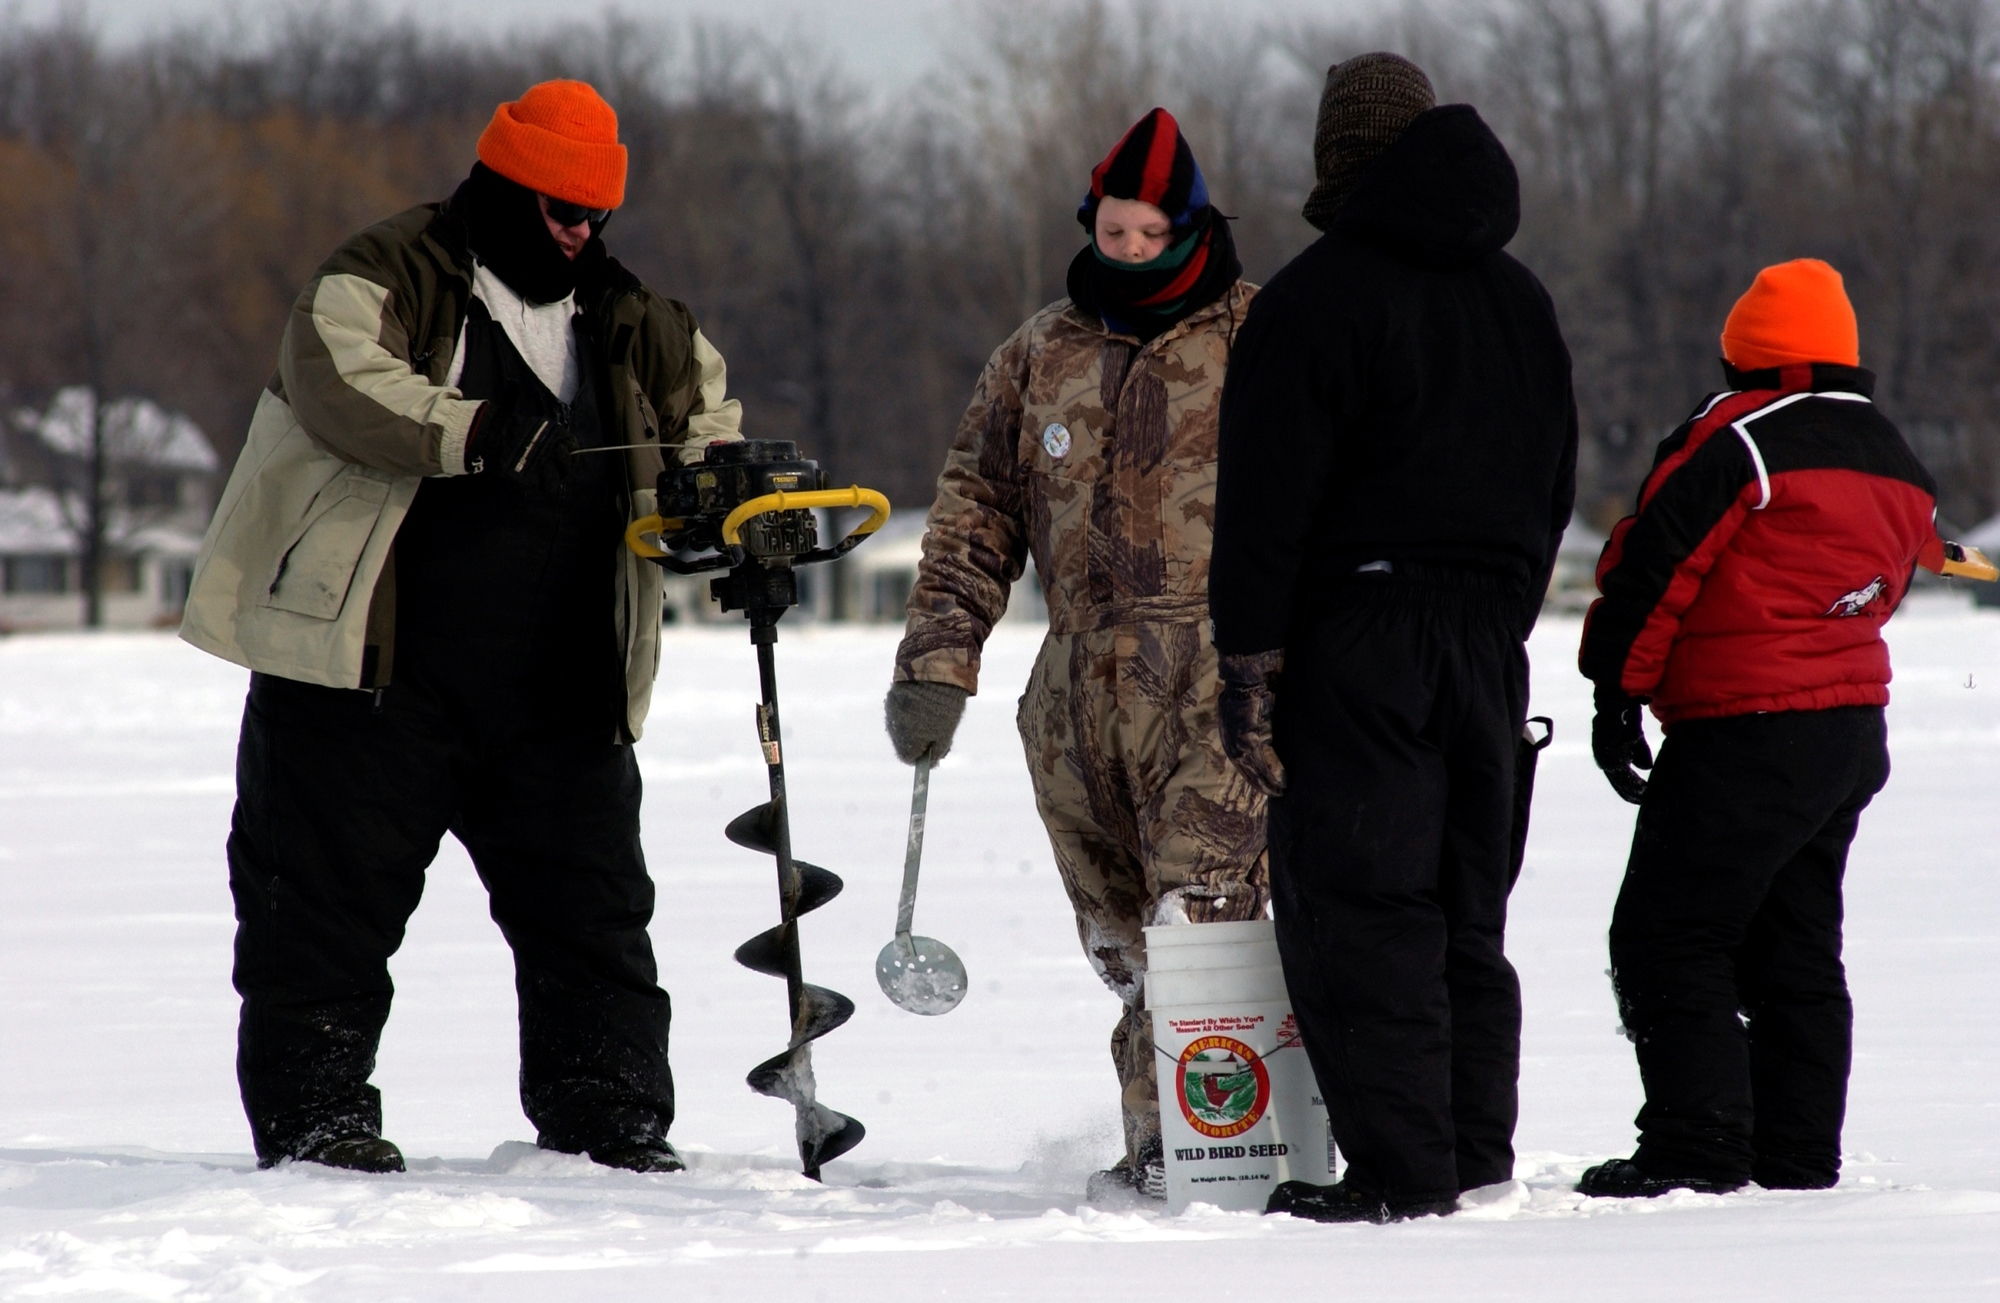 Anglers ready with an auger and ice scoop ice fish on a Michigan lake.